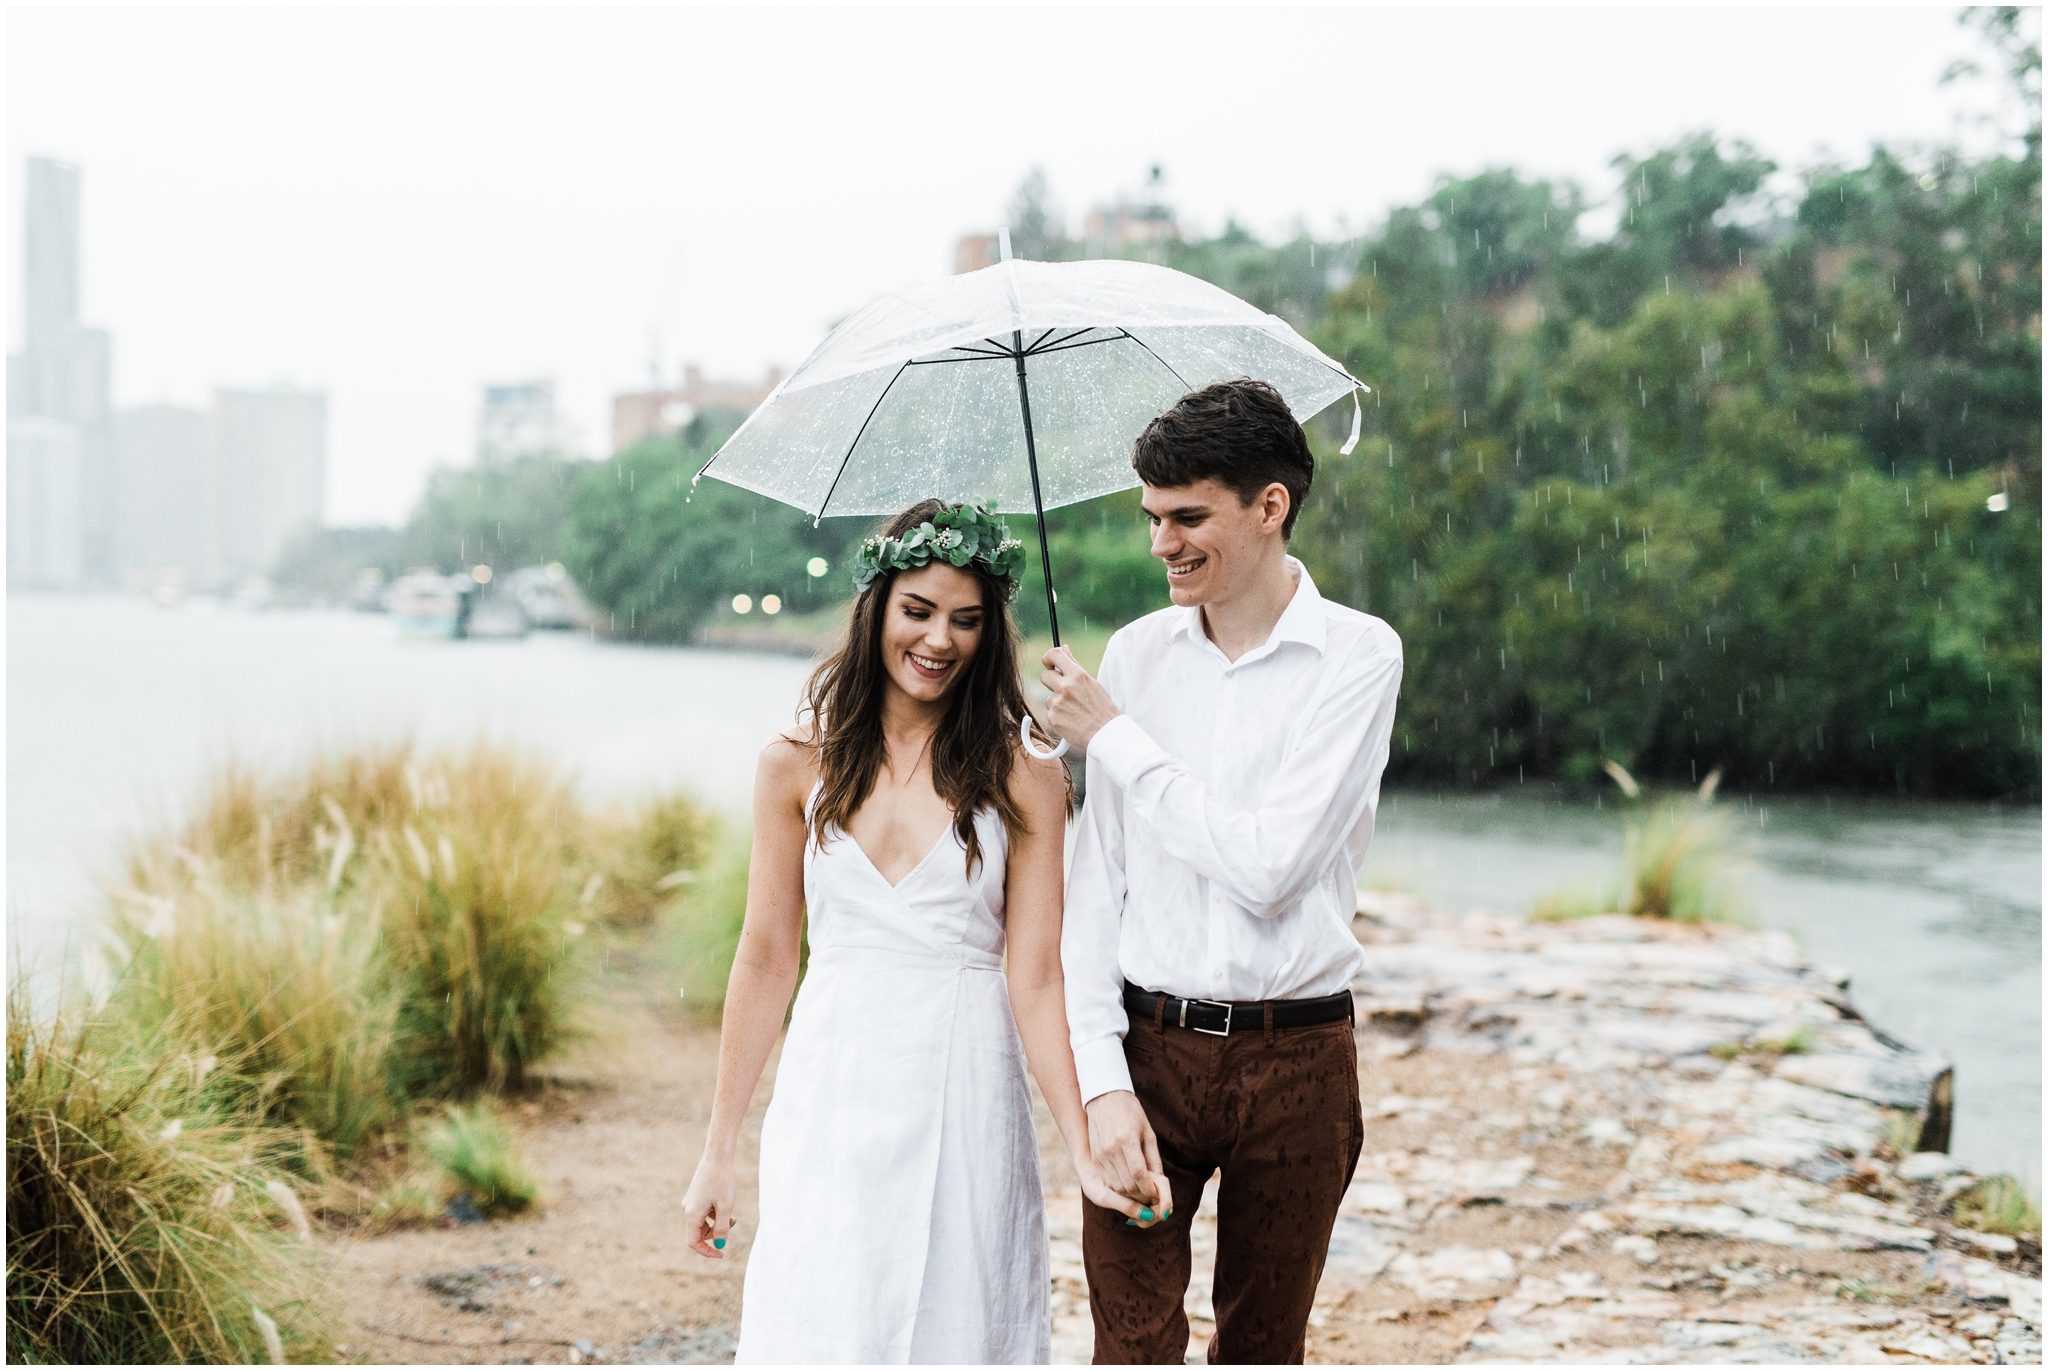 Brisbane-City-Engagement-Session7.jpg